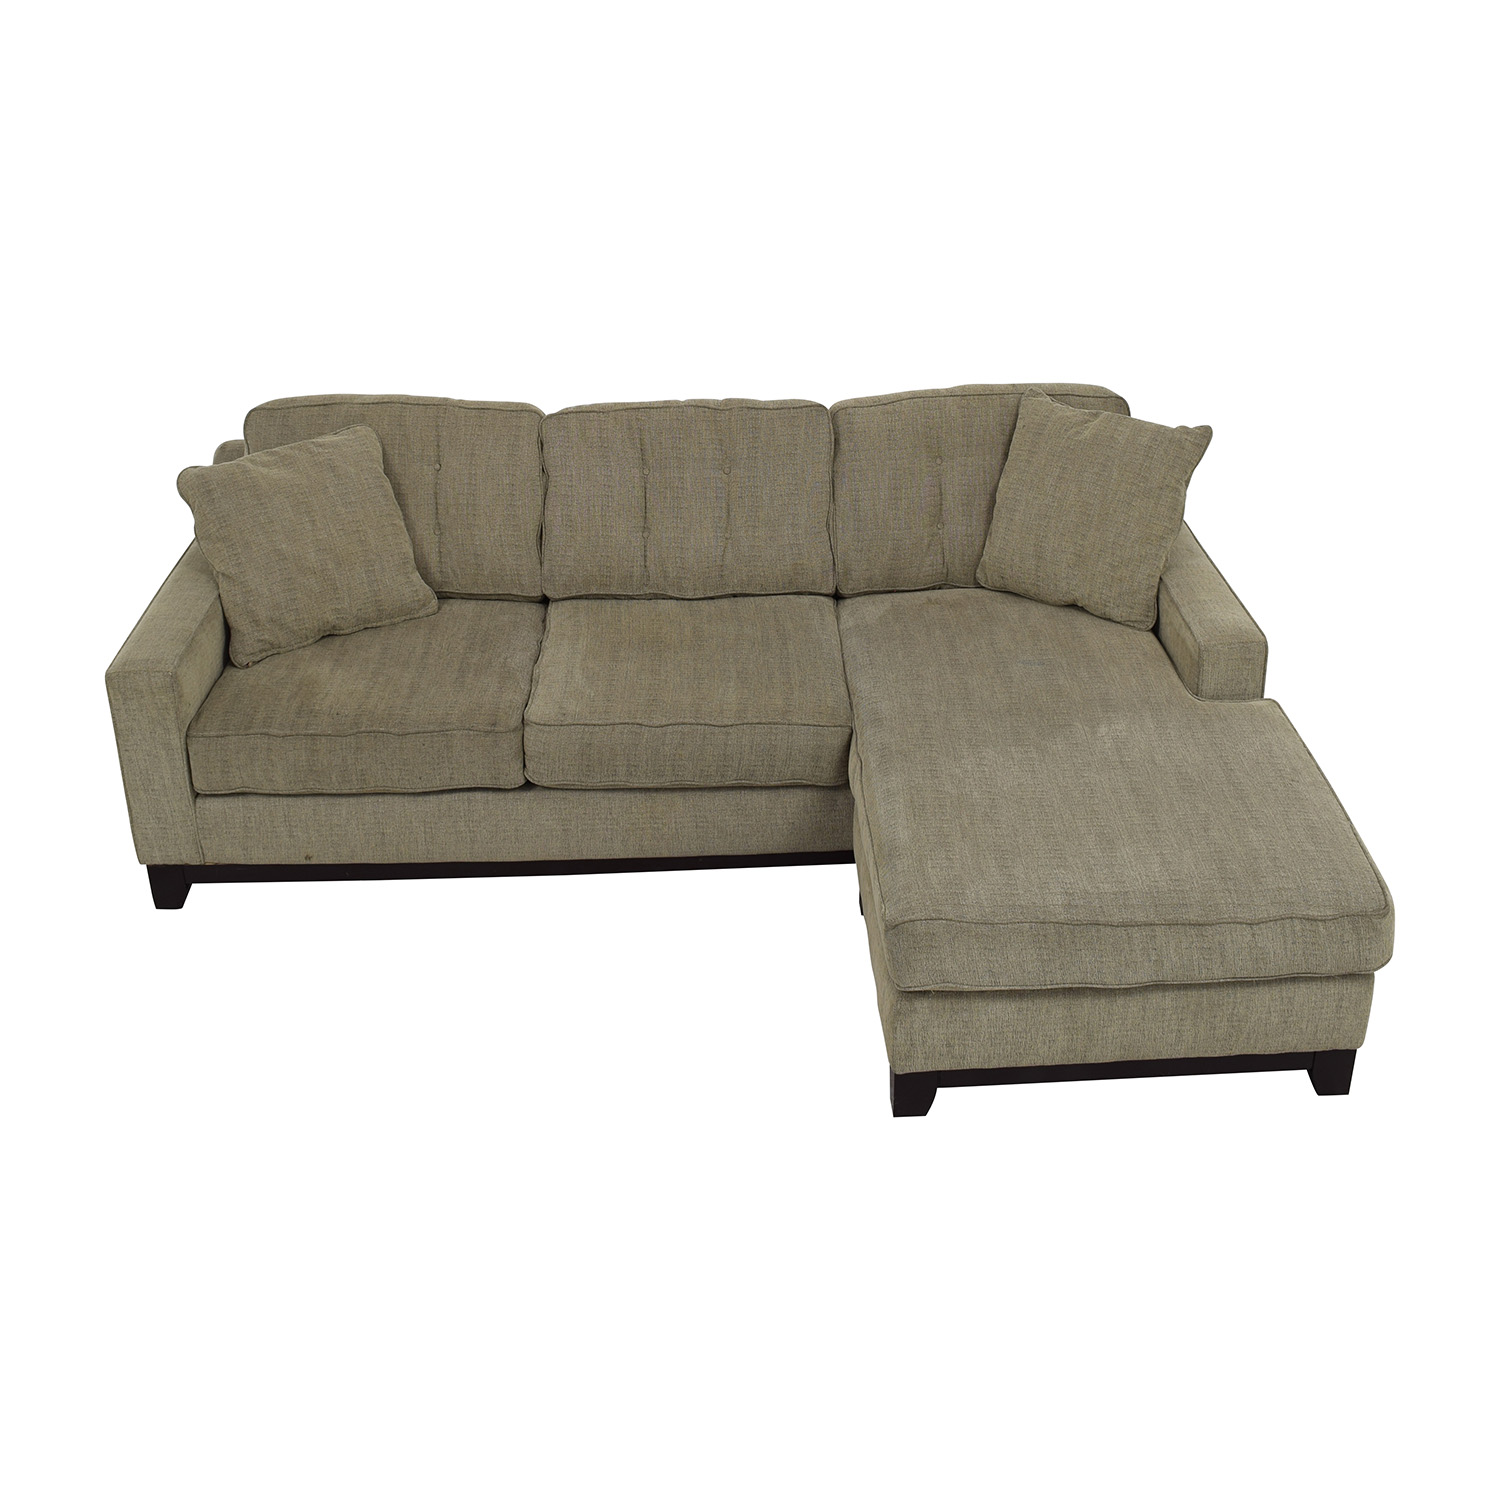 Grey L-Shaped Tufted Sectional with Right Chaise discount